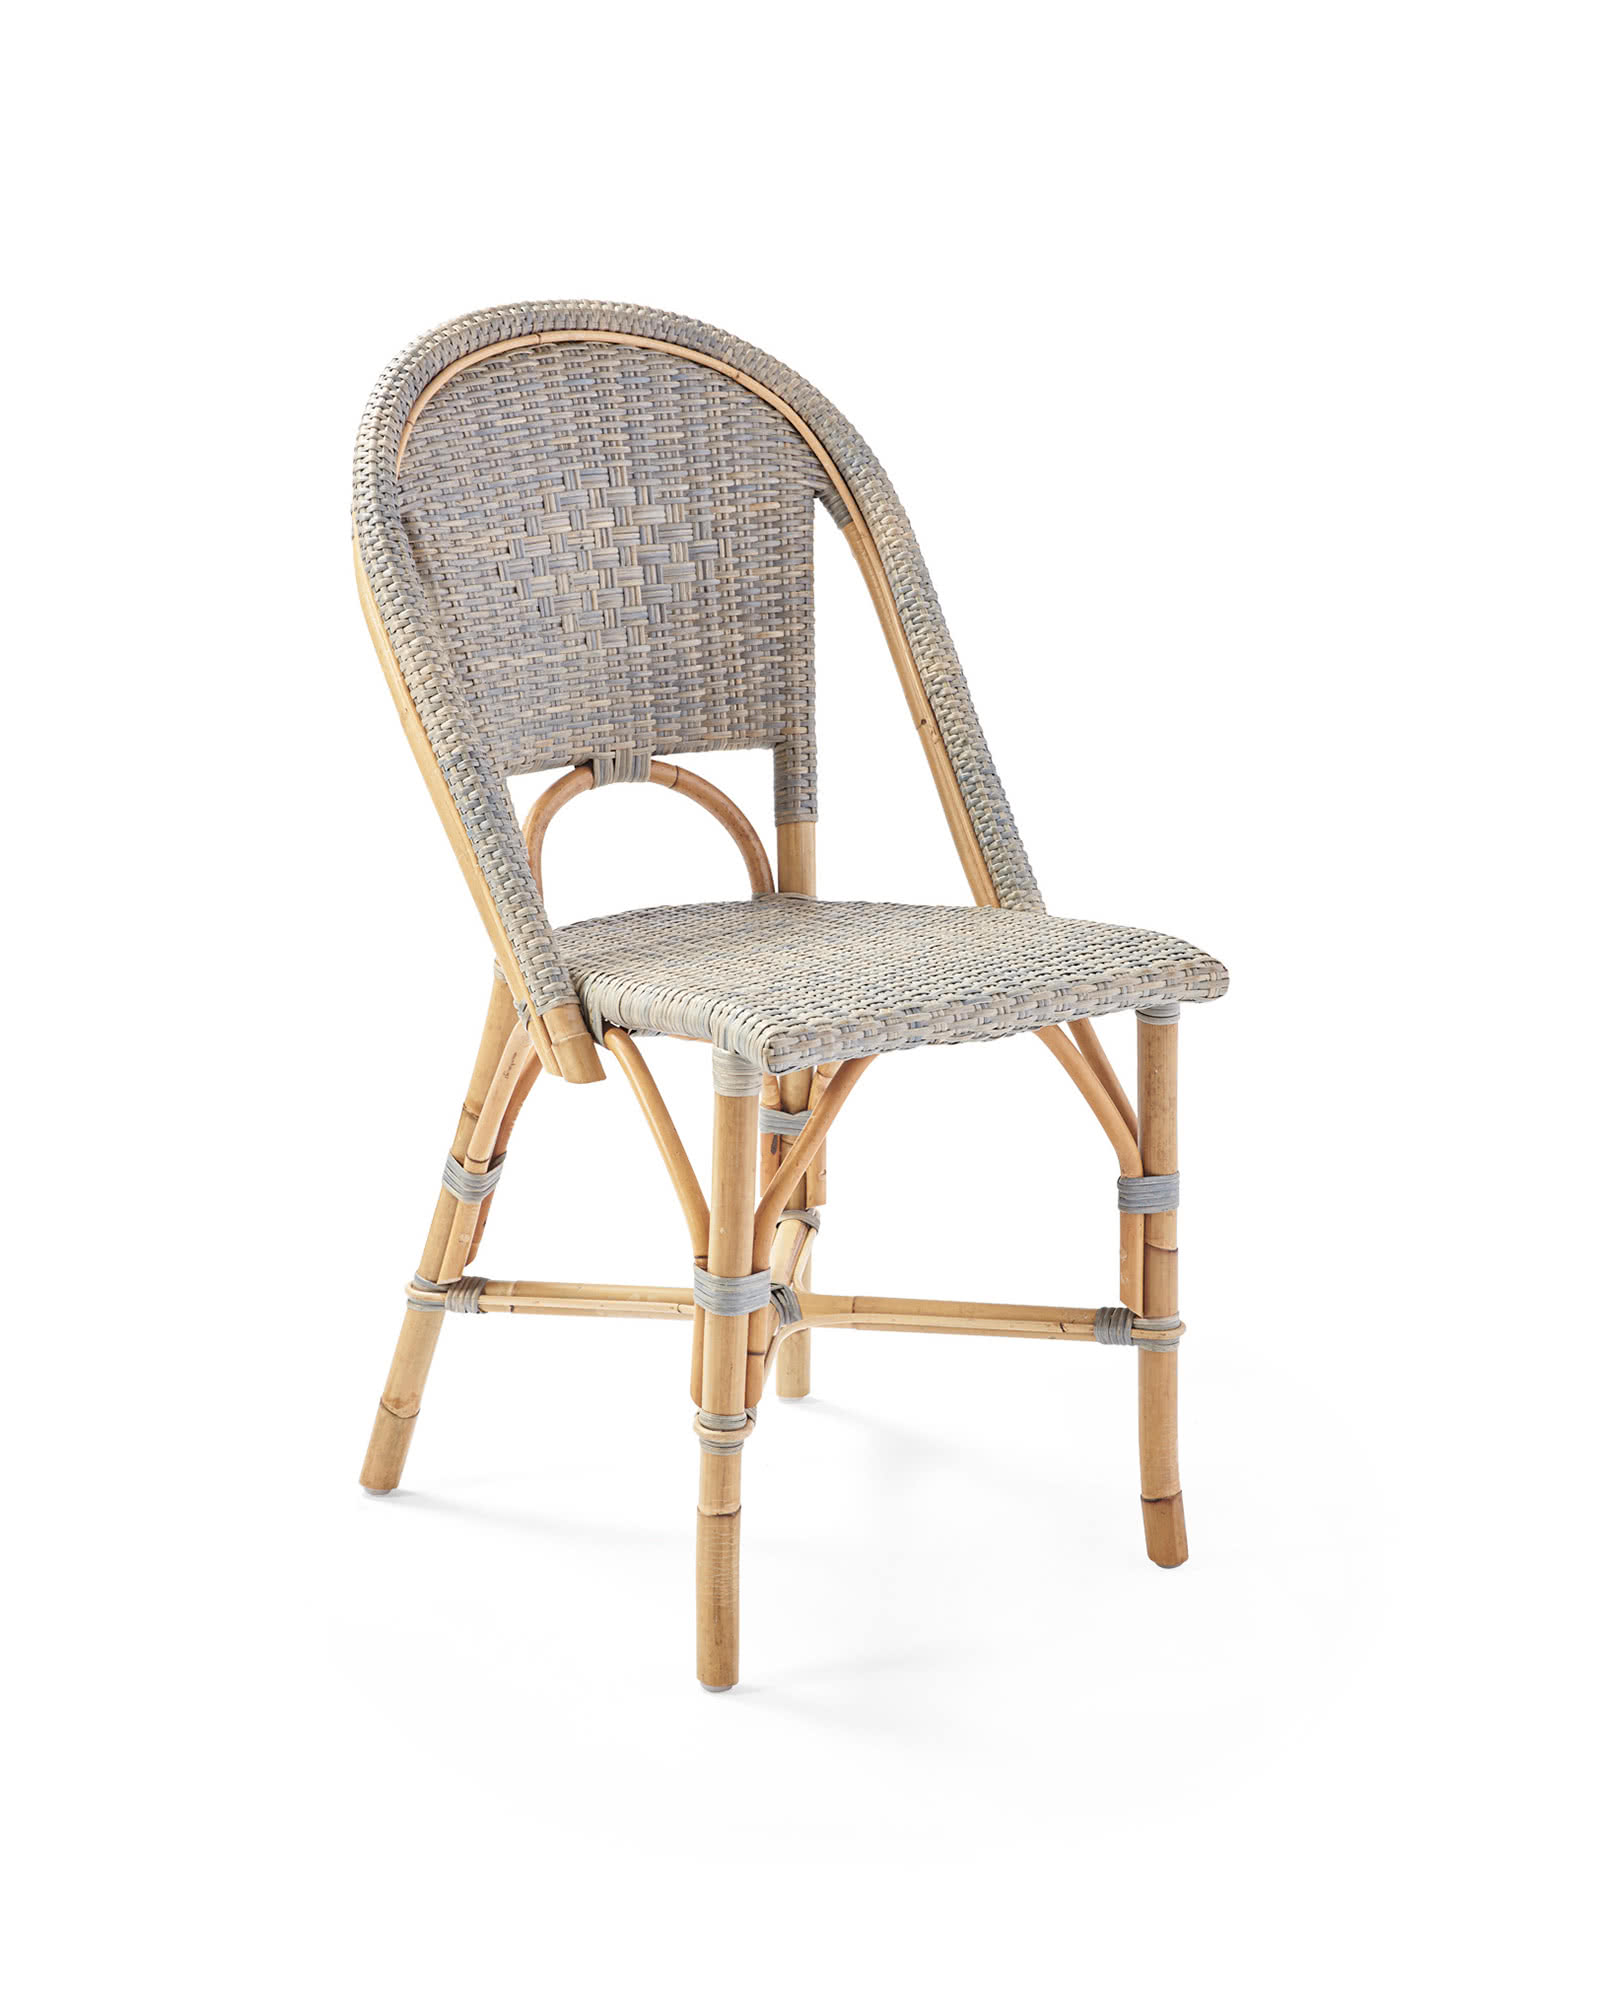 Furn_Stonewashed_Riviera_Side_Chair_Mist_Angle_MV_0055_Crop_SH